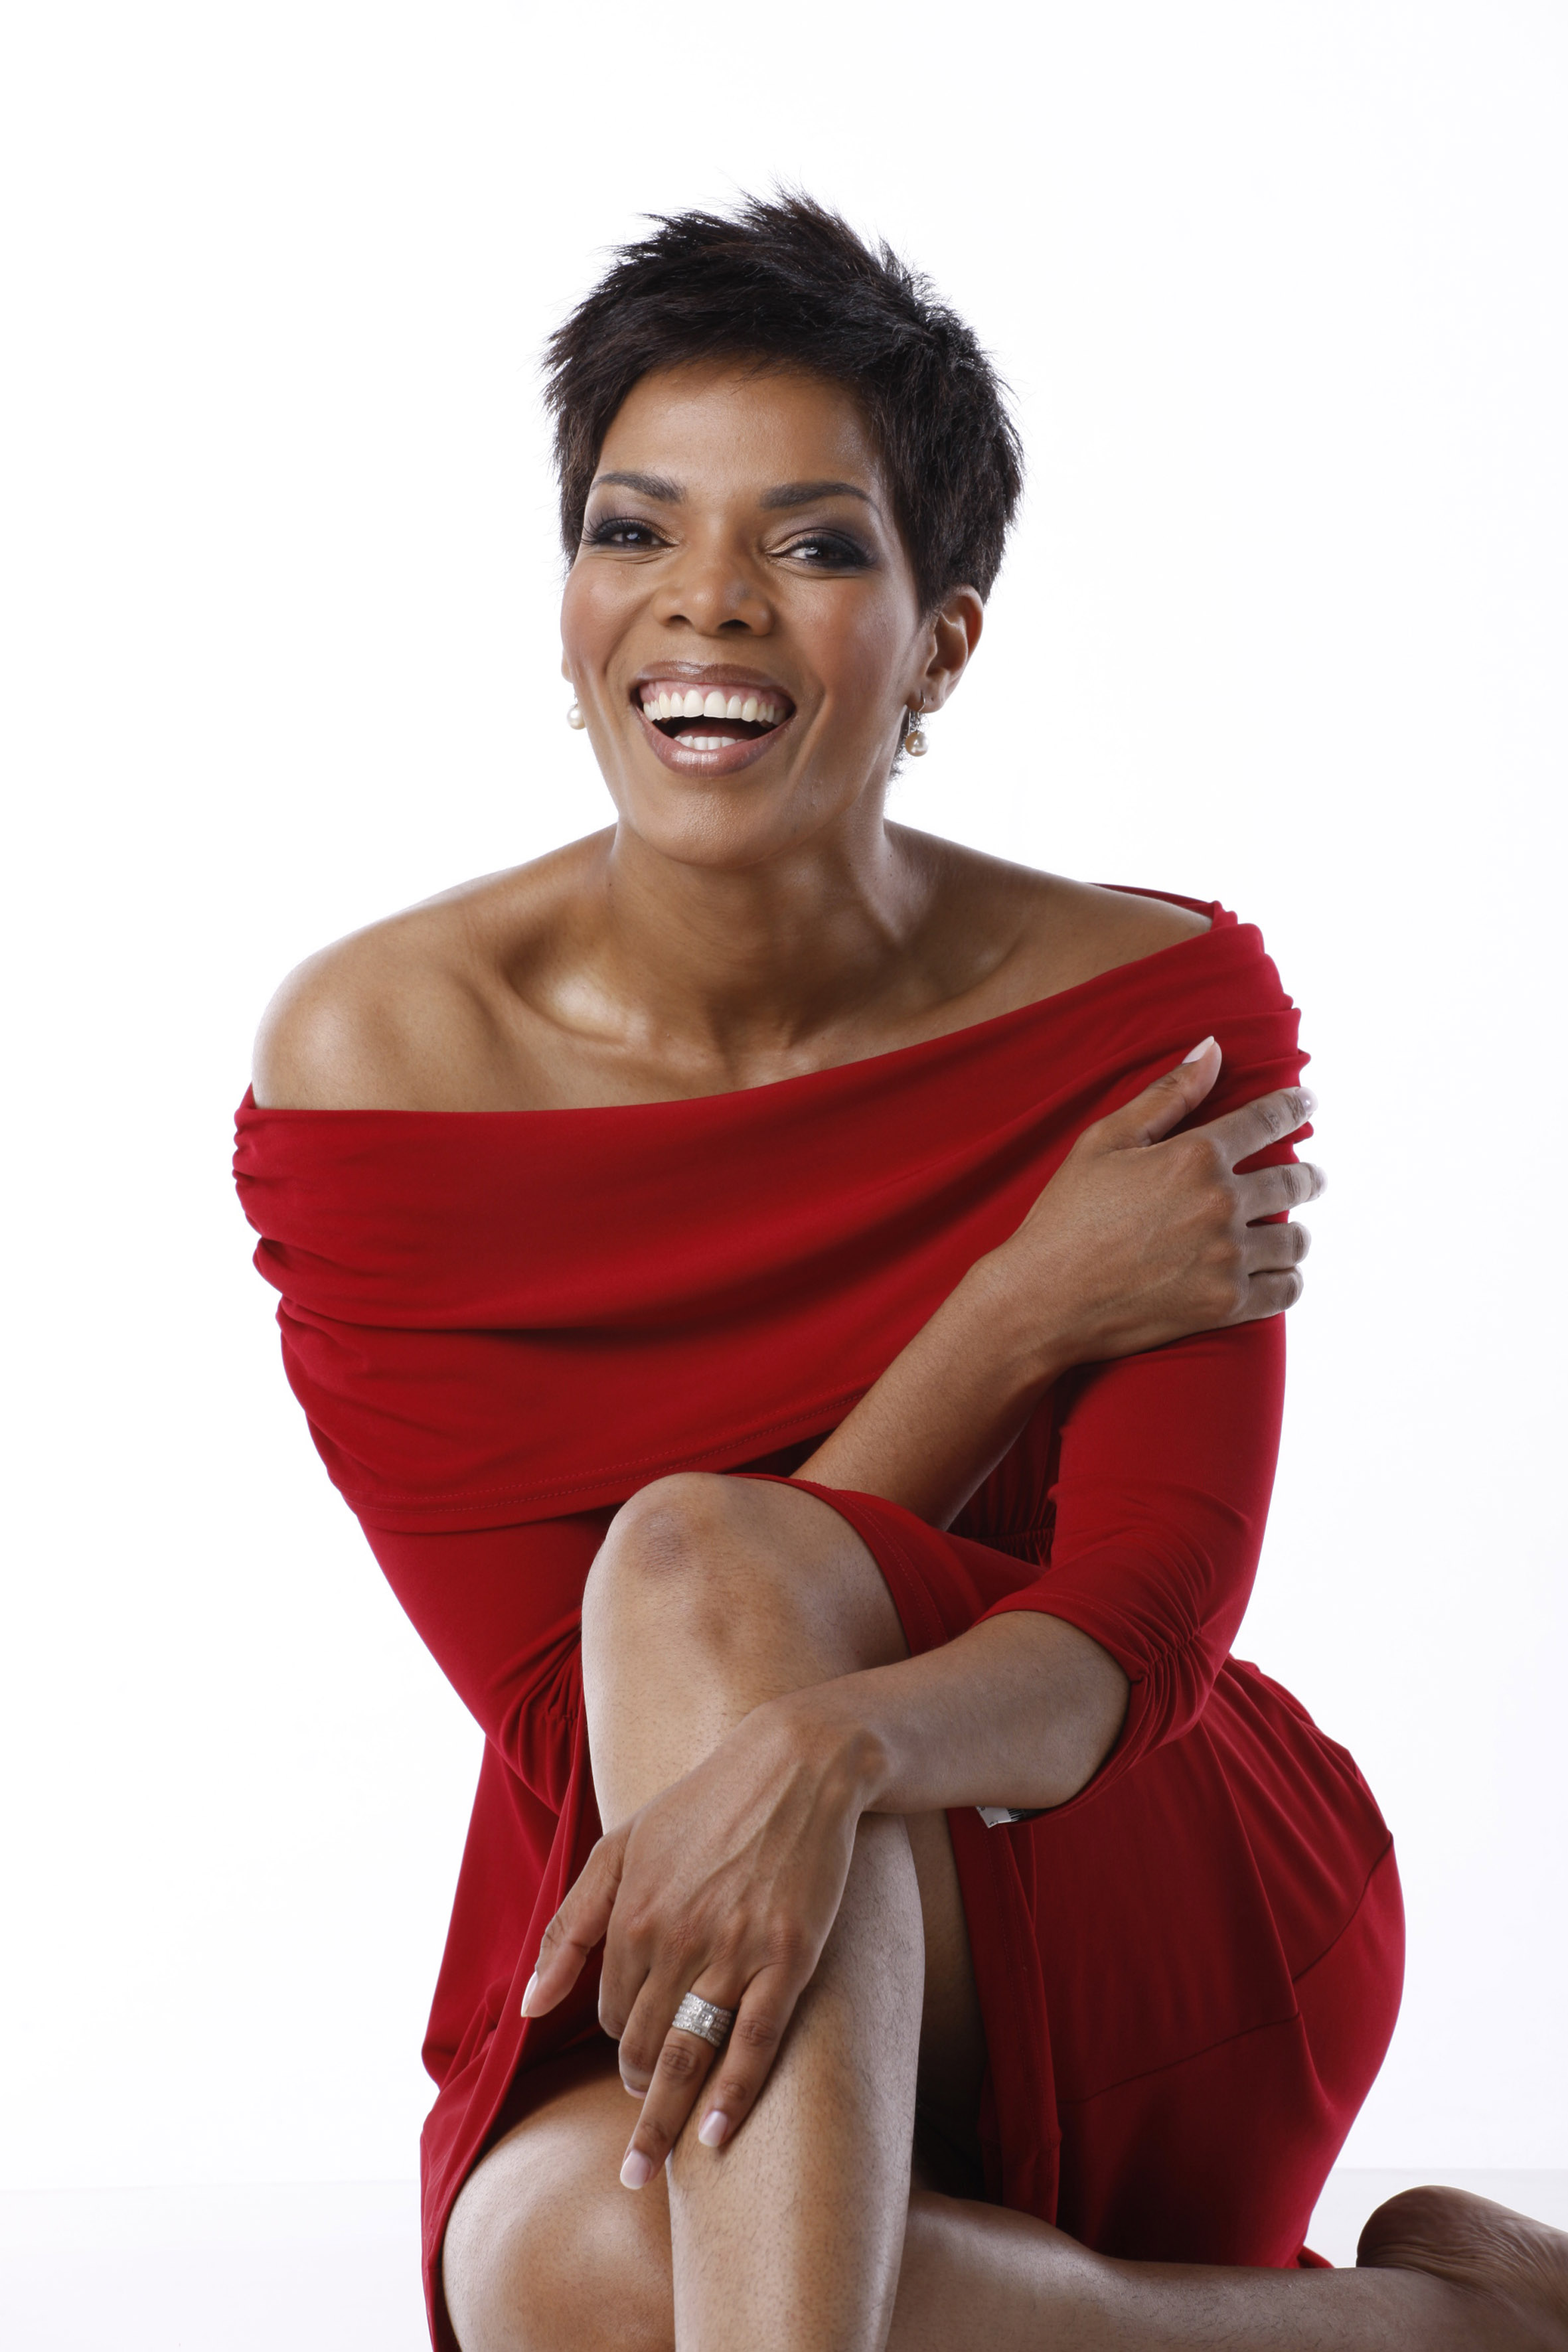 SOUTH AFRICA - June 2011: South African actress Connie Ferguson during a photo shoot for YOU Pulse magazine. (Photo by Gallo Images / You Pulse / Aubrey Jonsson)